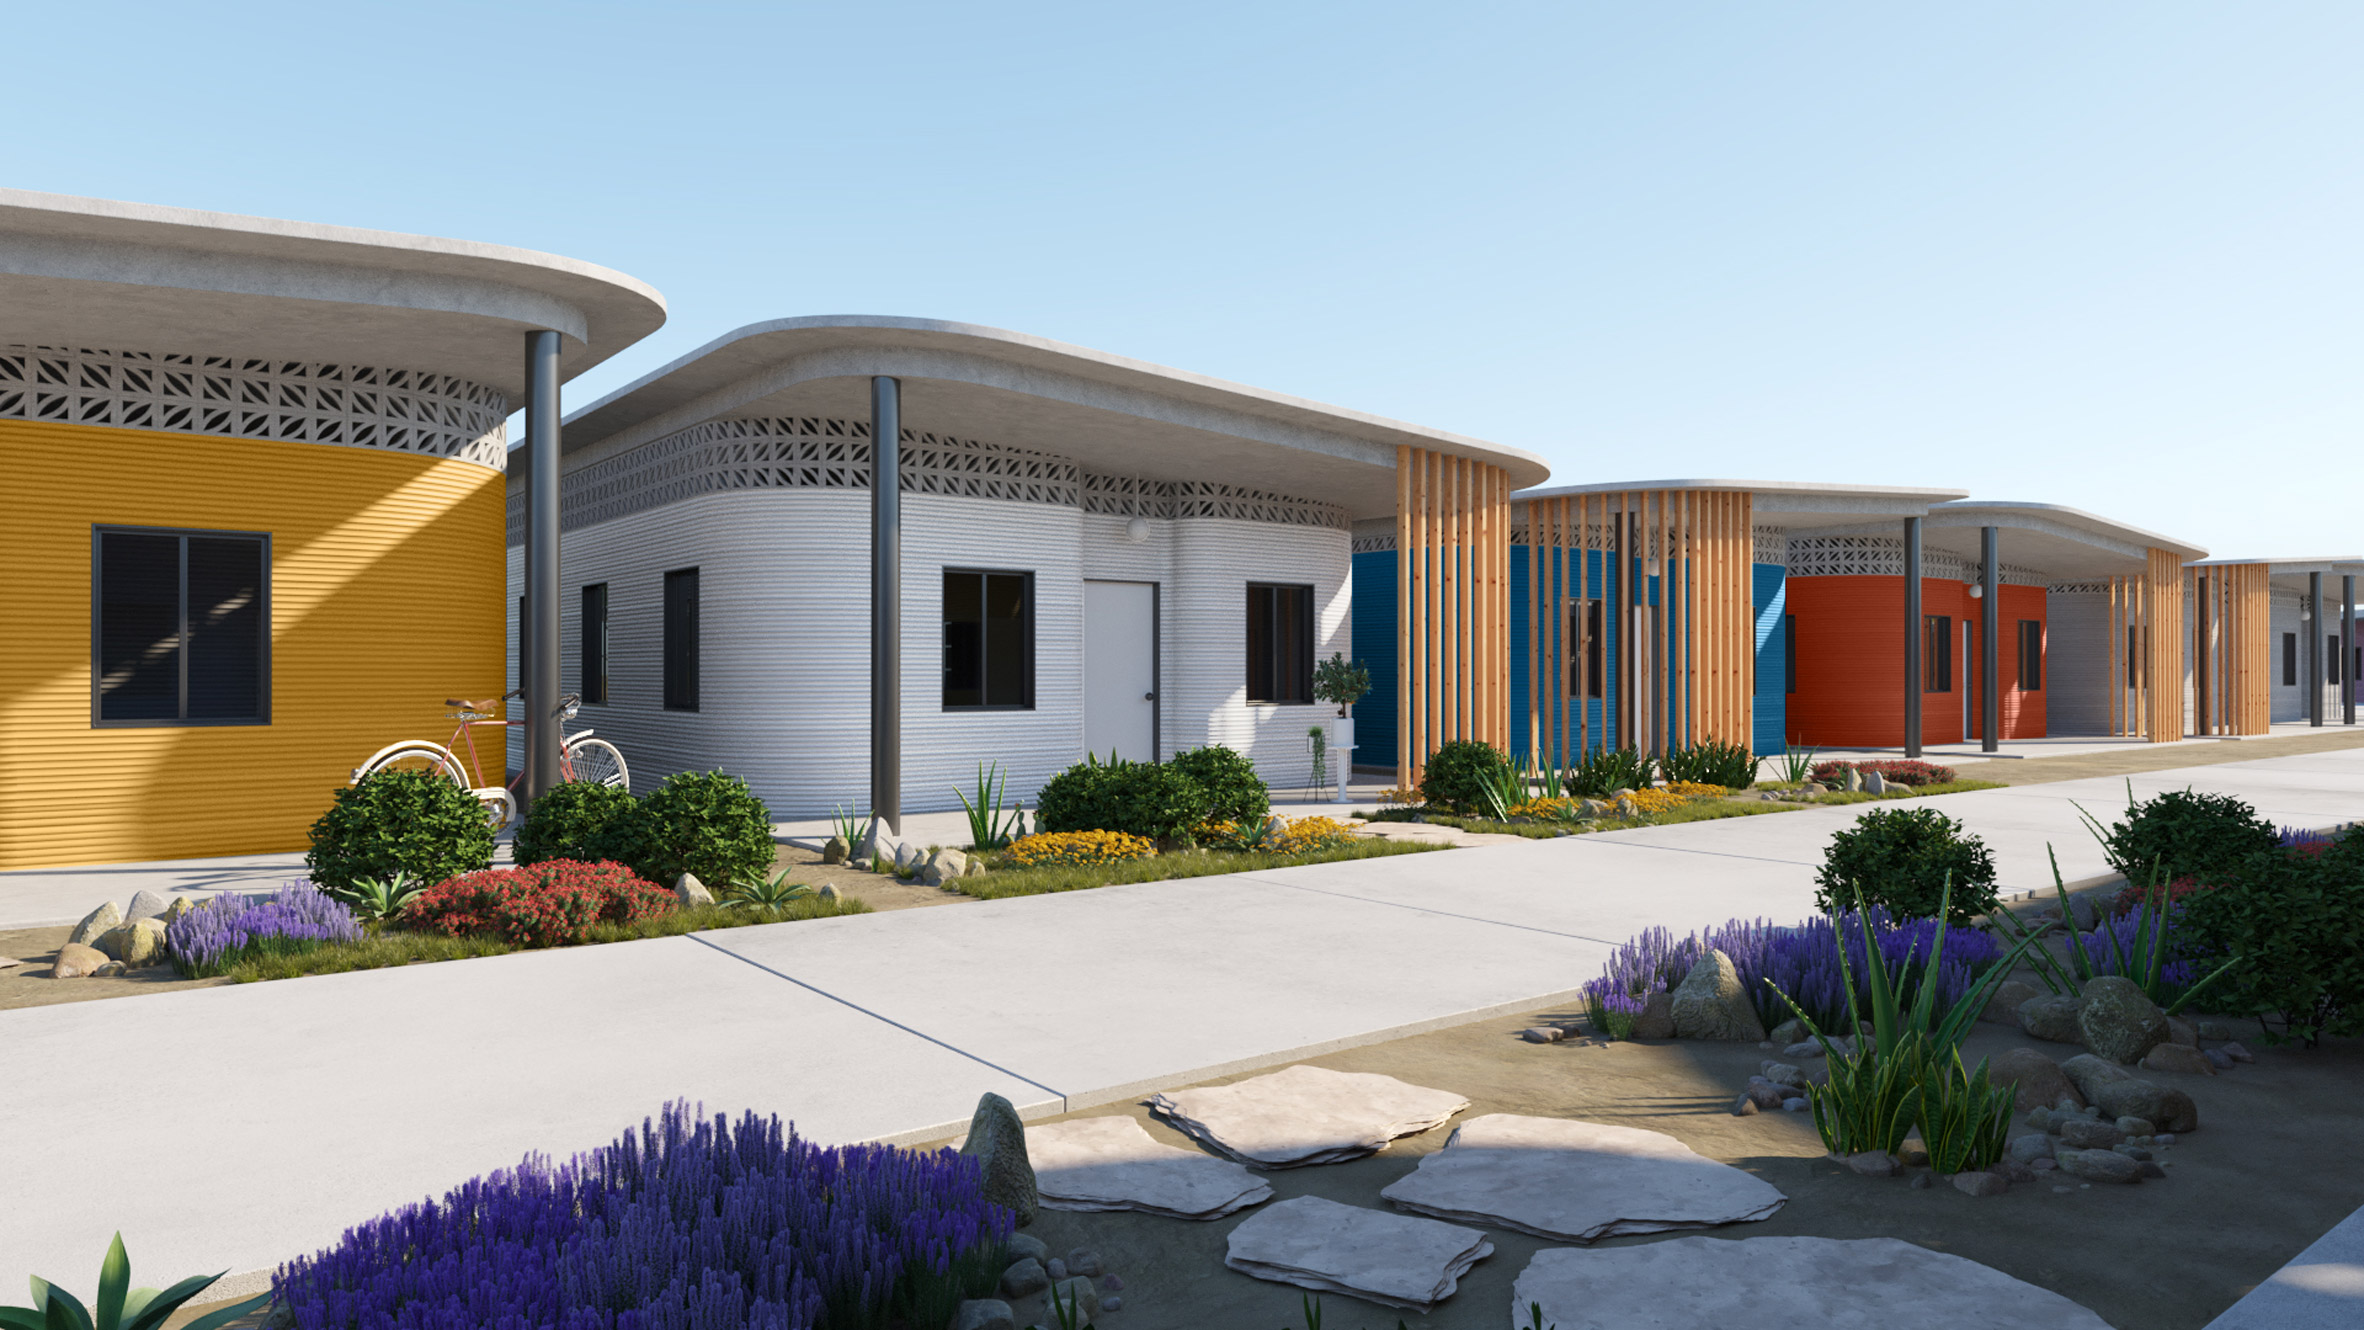 3D printing to provide housing for low-income community in Latin